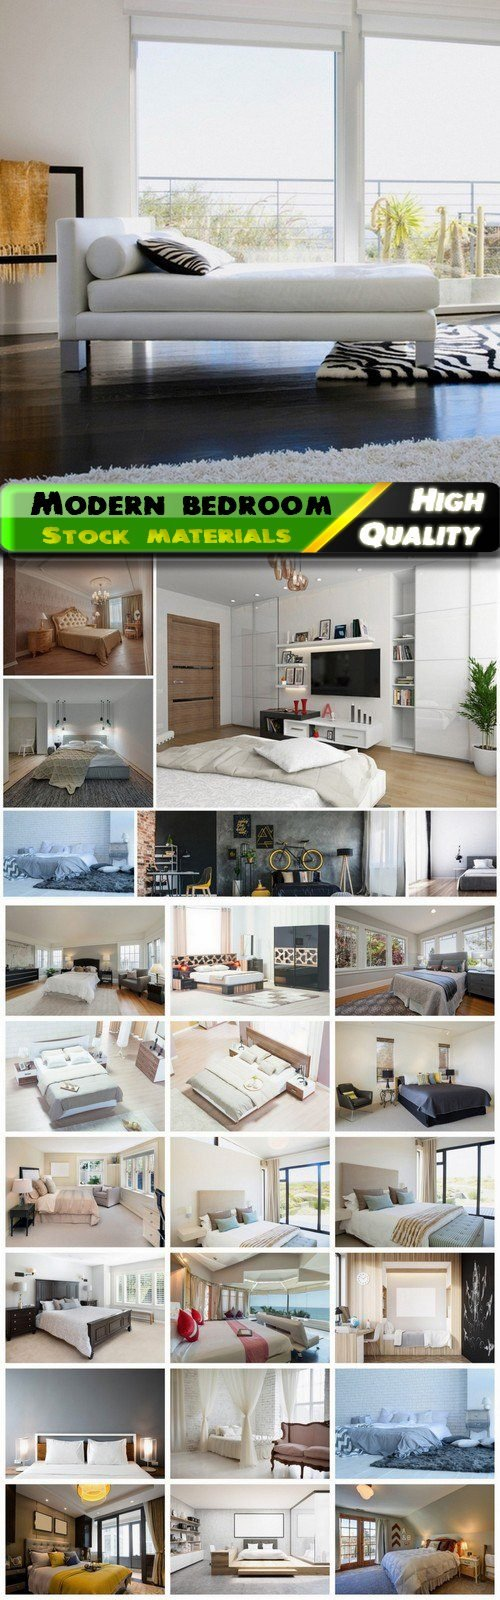 Creative home and house interior with modern bedroom 2 25 Jpg